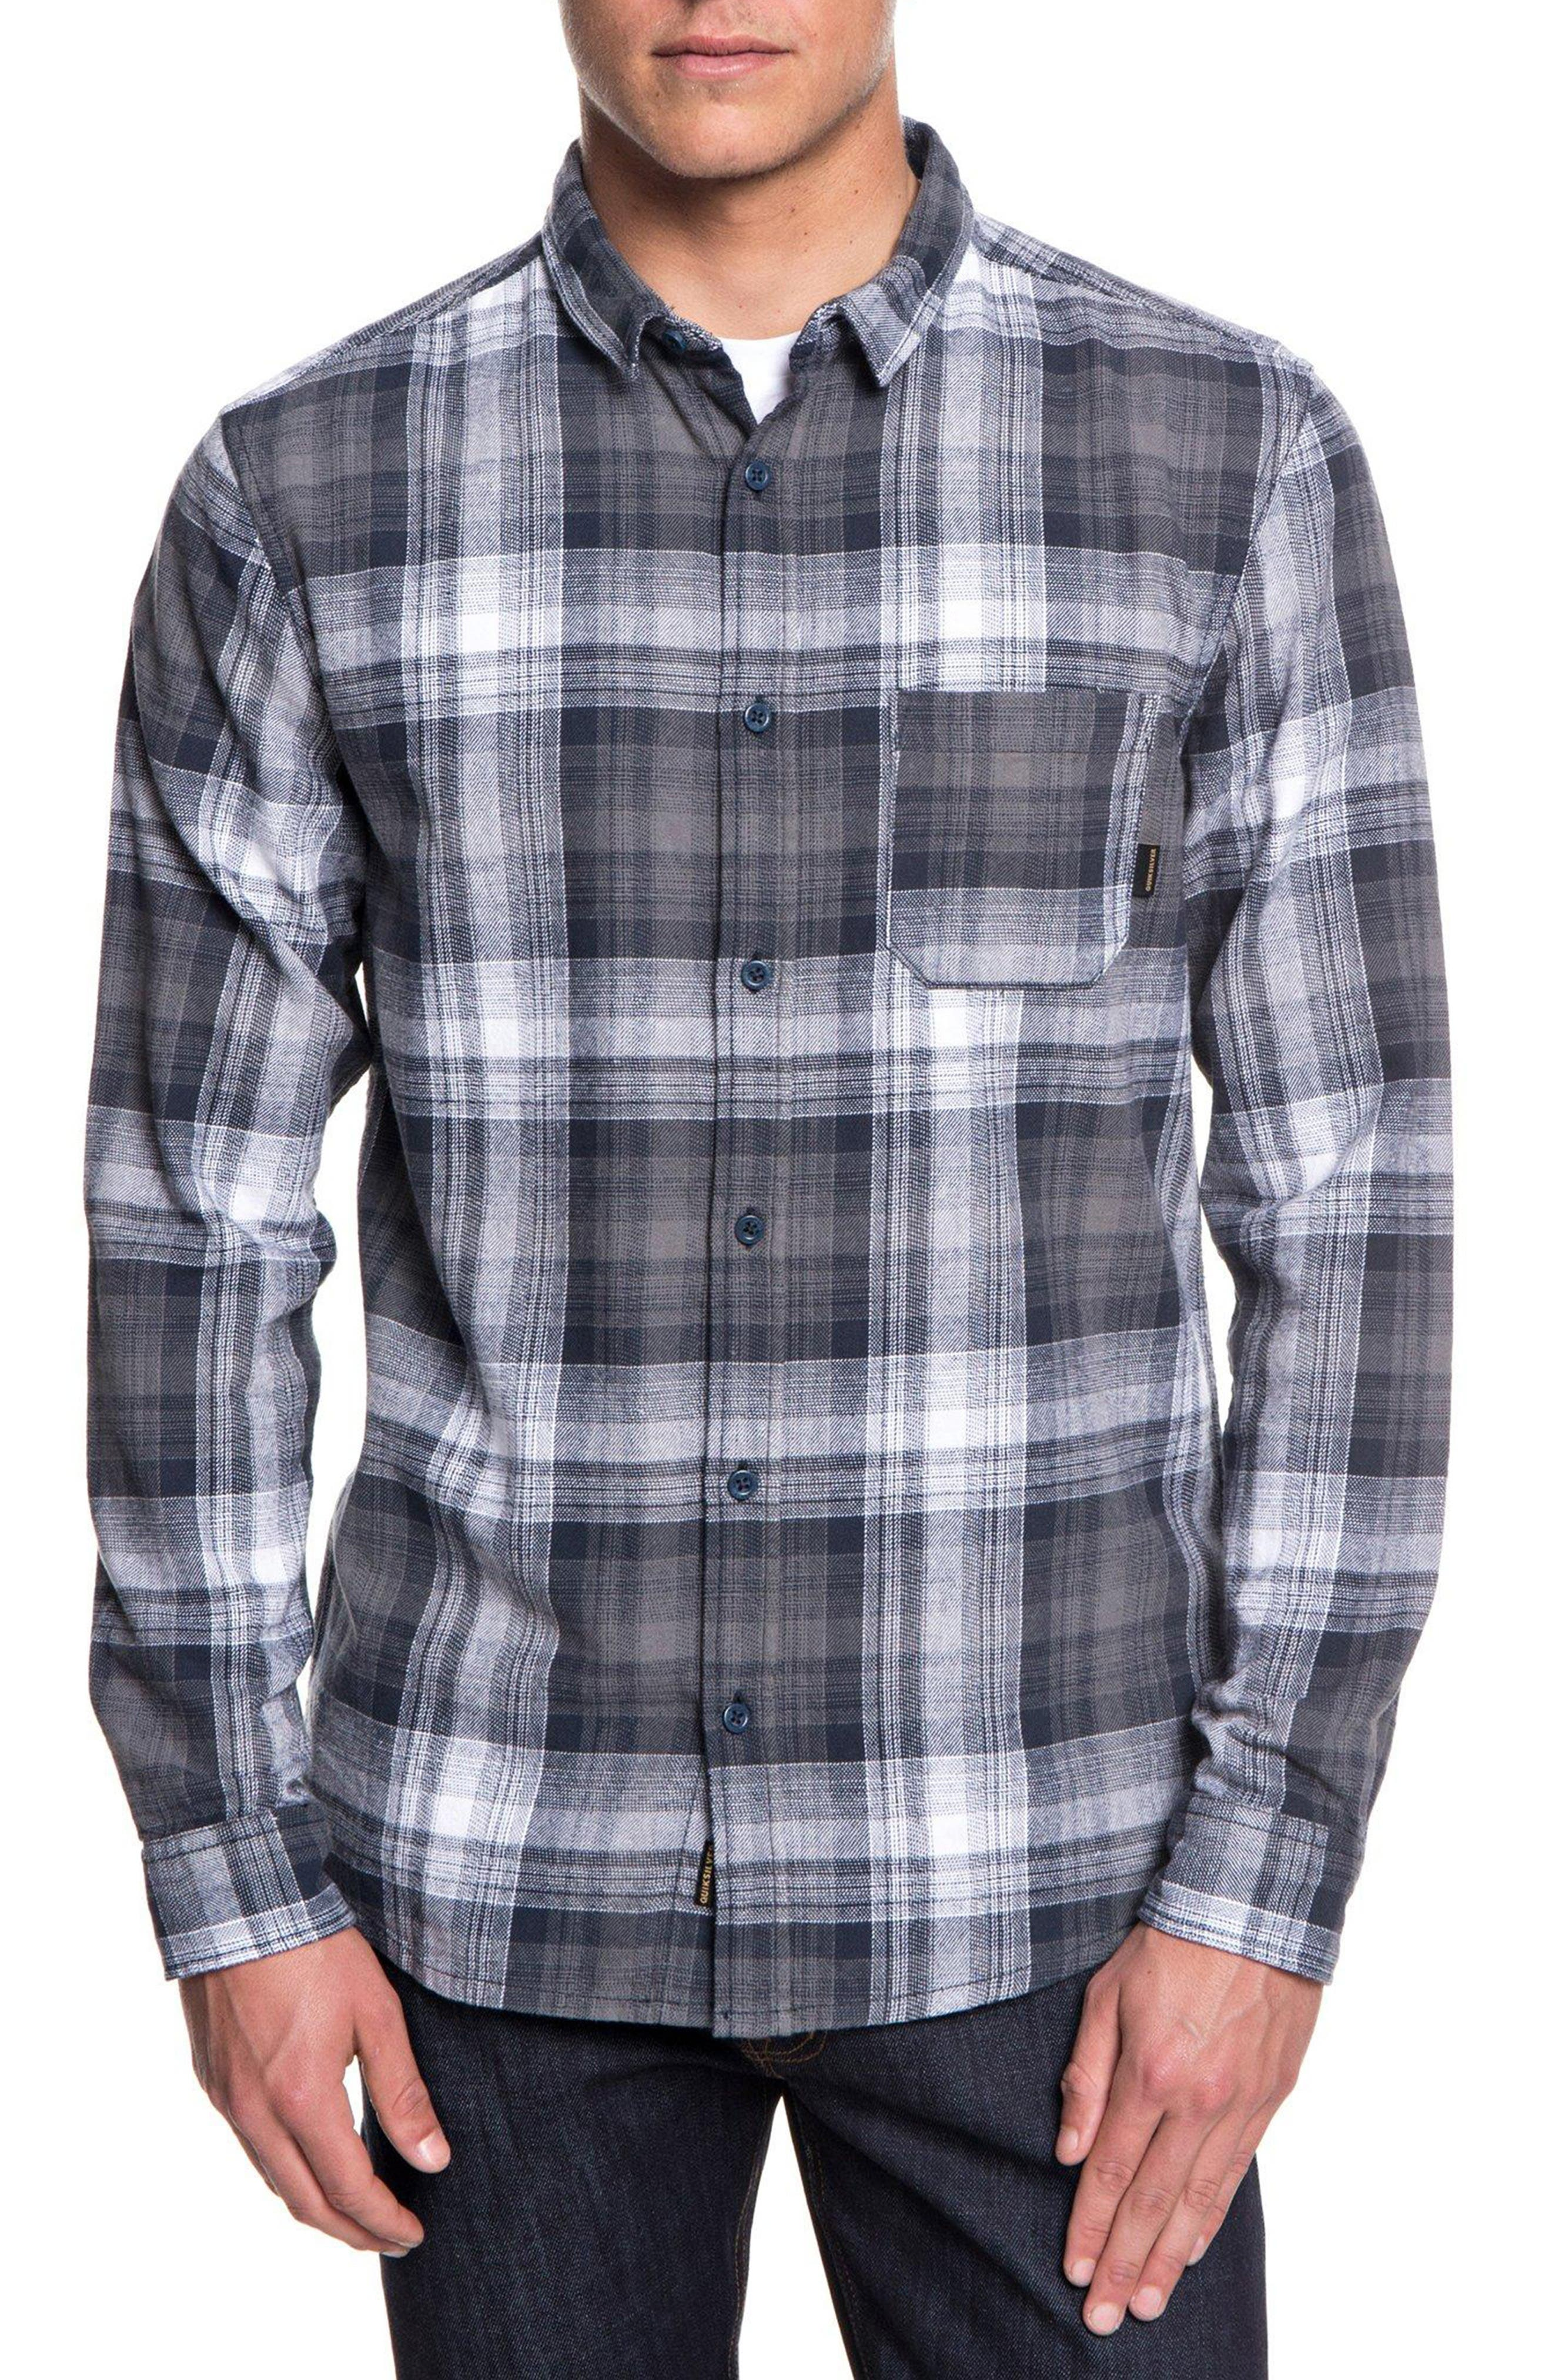 Fatherfly Plaid Shirt,                         Main,                         color, BLUE NIGHT FATHERFLY CHECK